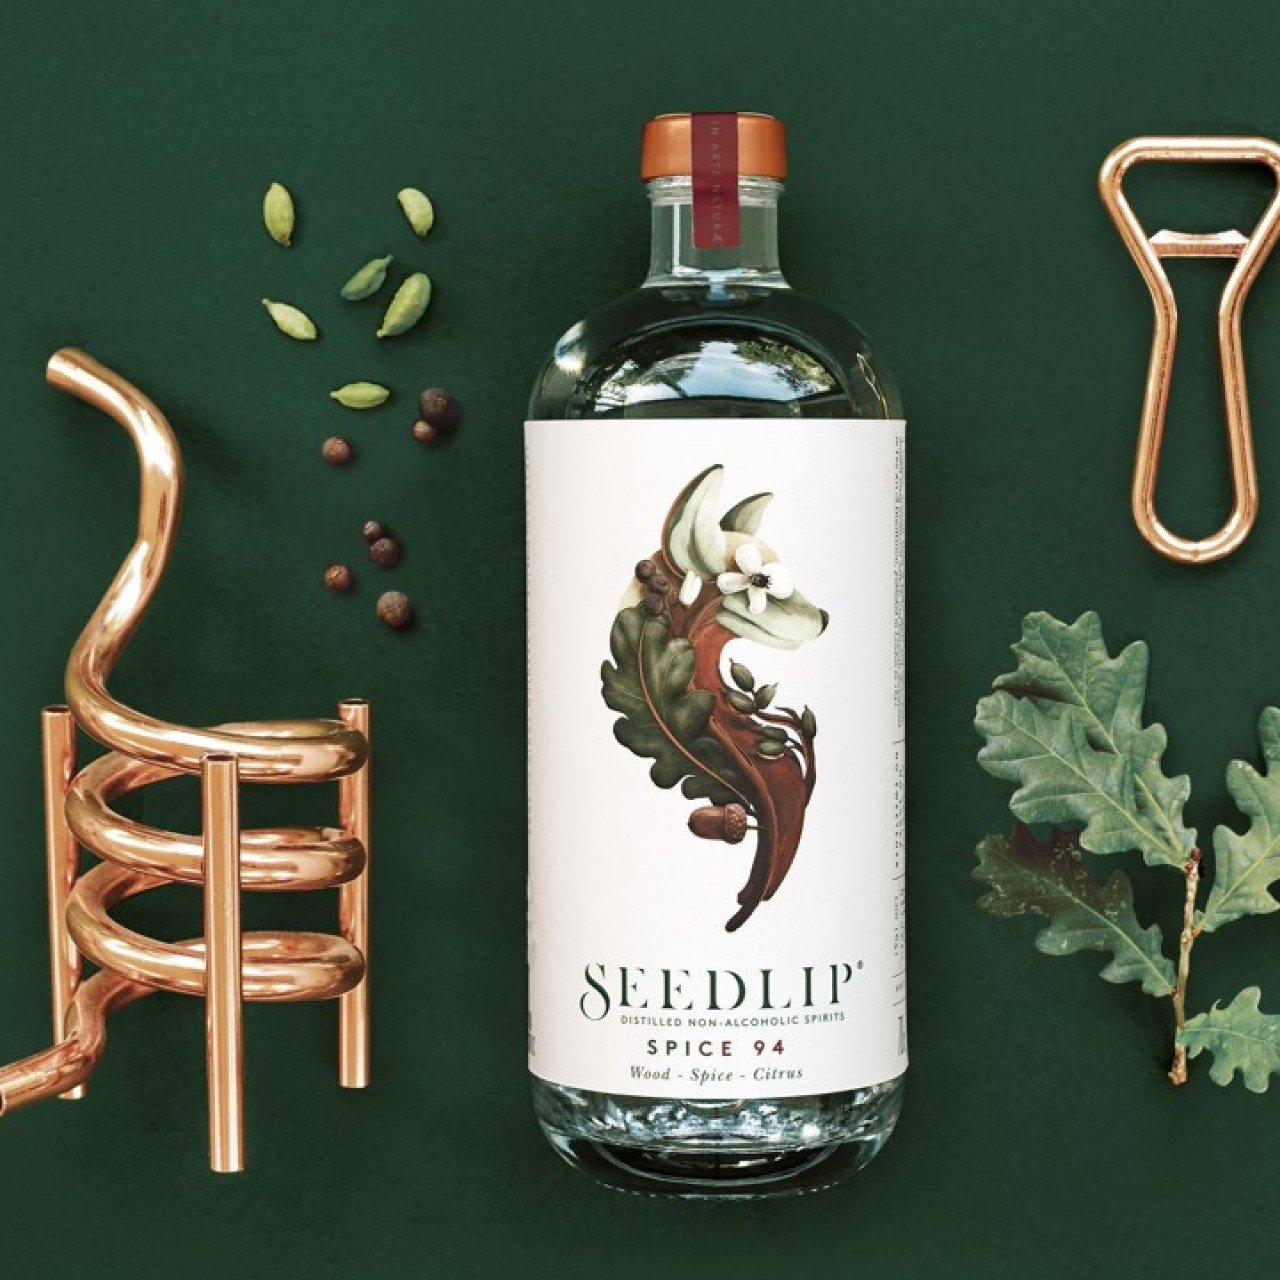 Would you pay $325 for a non-alcoholic spirit? Seedlip hopes you